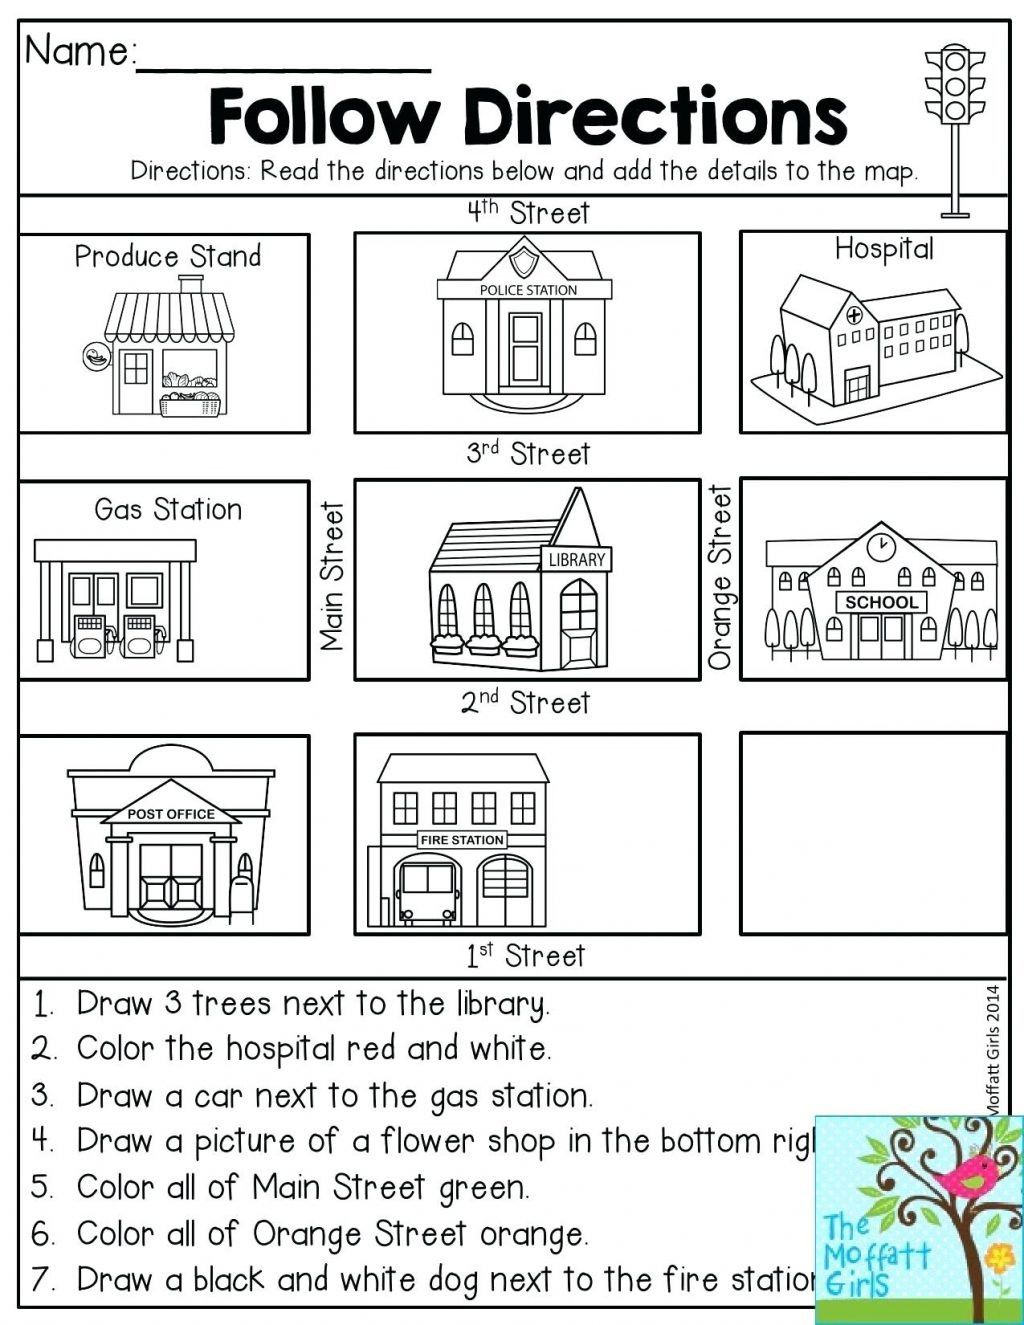 5 First Grade Map Worksheets Printable In 2020 Kindergarten Social Studies Teaching Social Studies Map Skills Worksheets